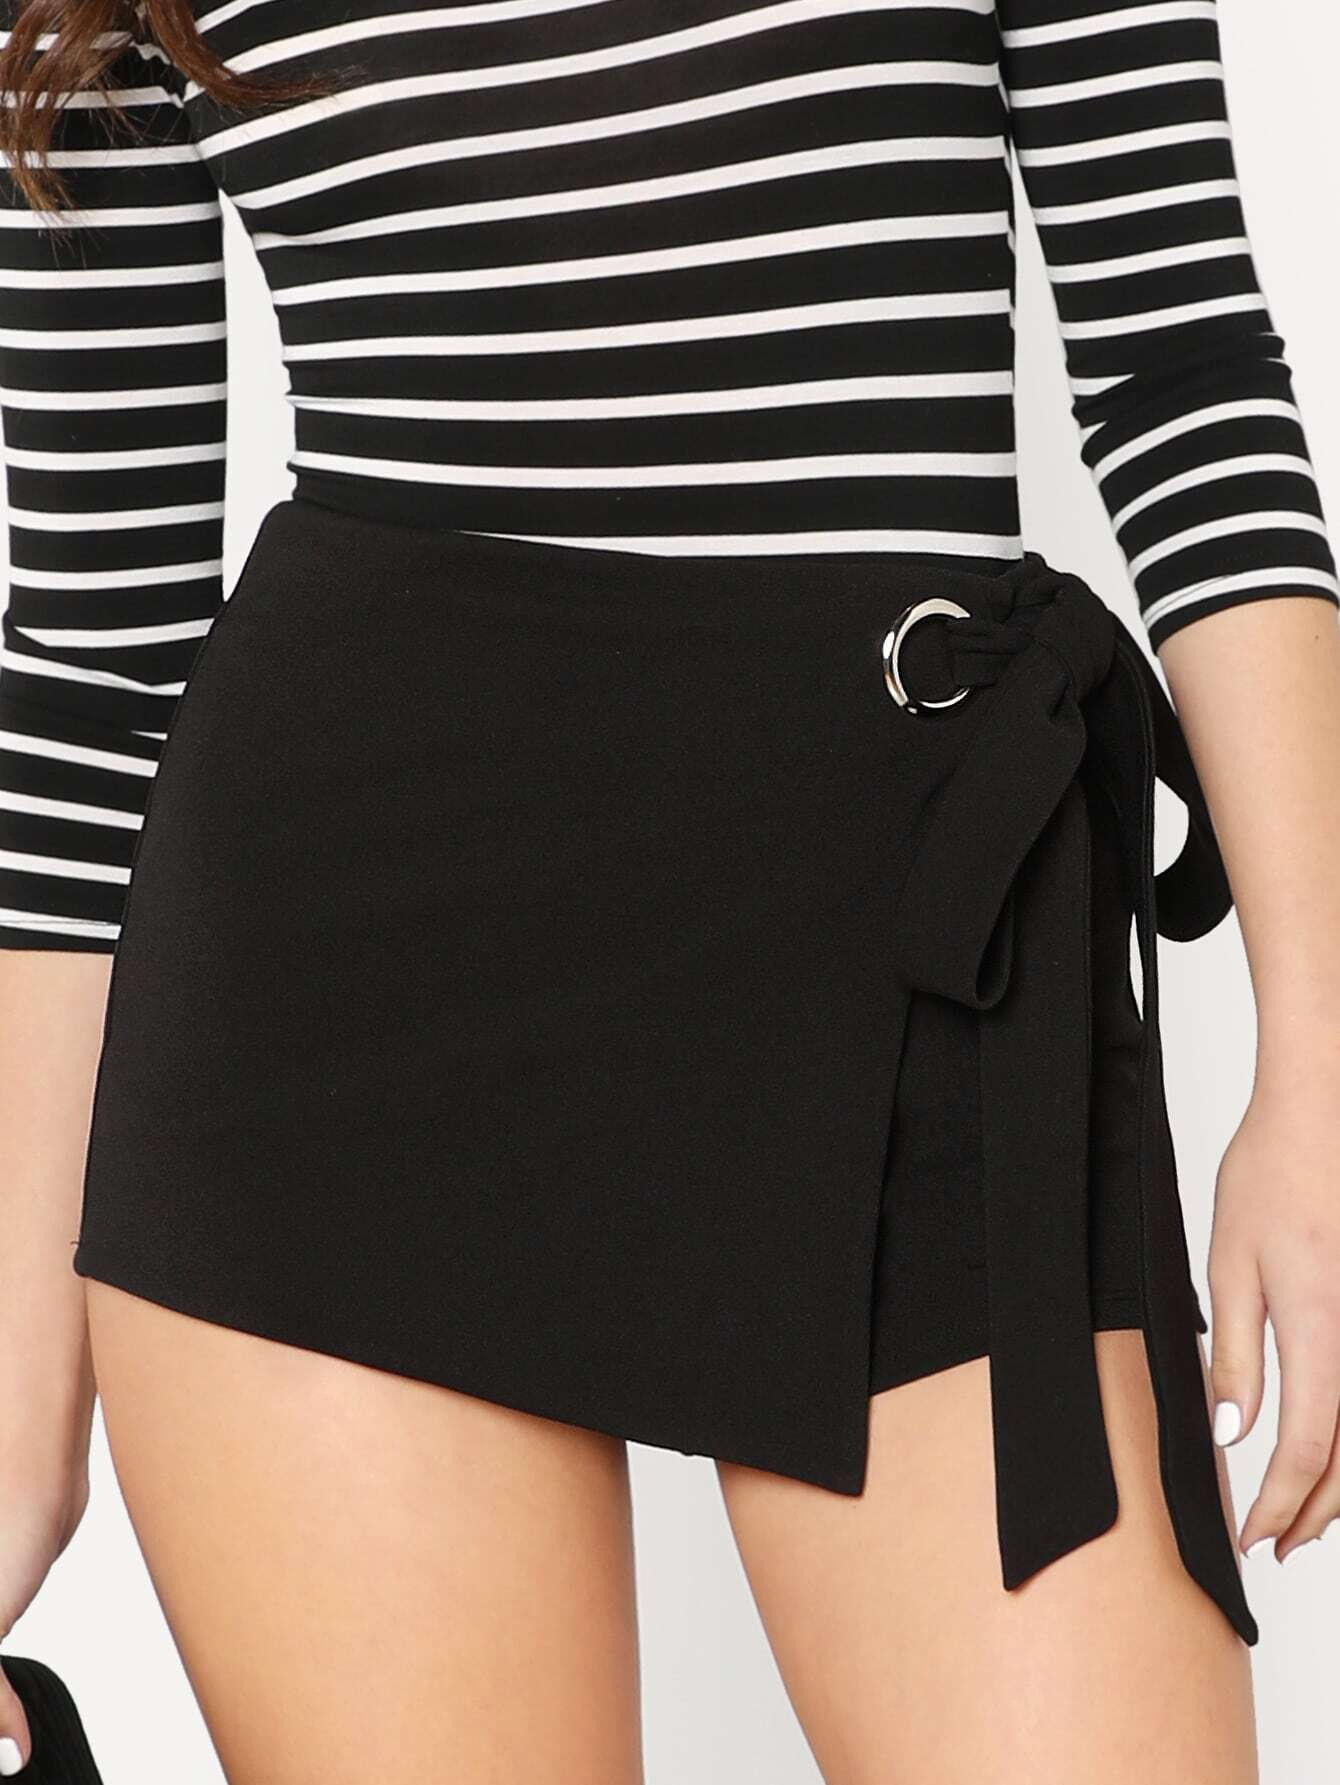 Self Belted Overlap Shorts self belted boxed pleated shorts